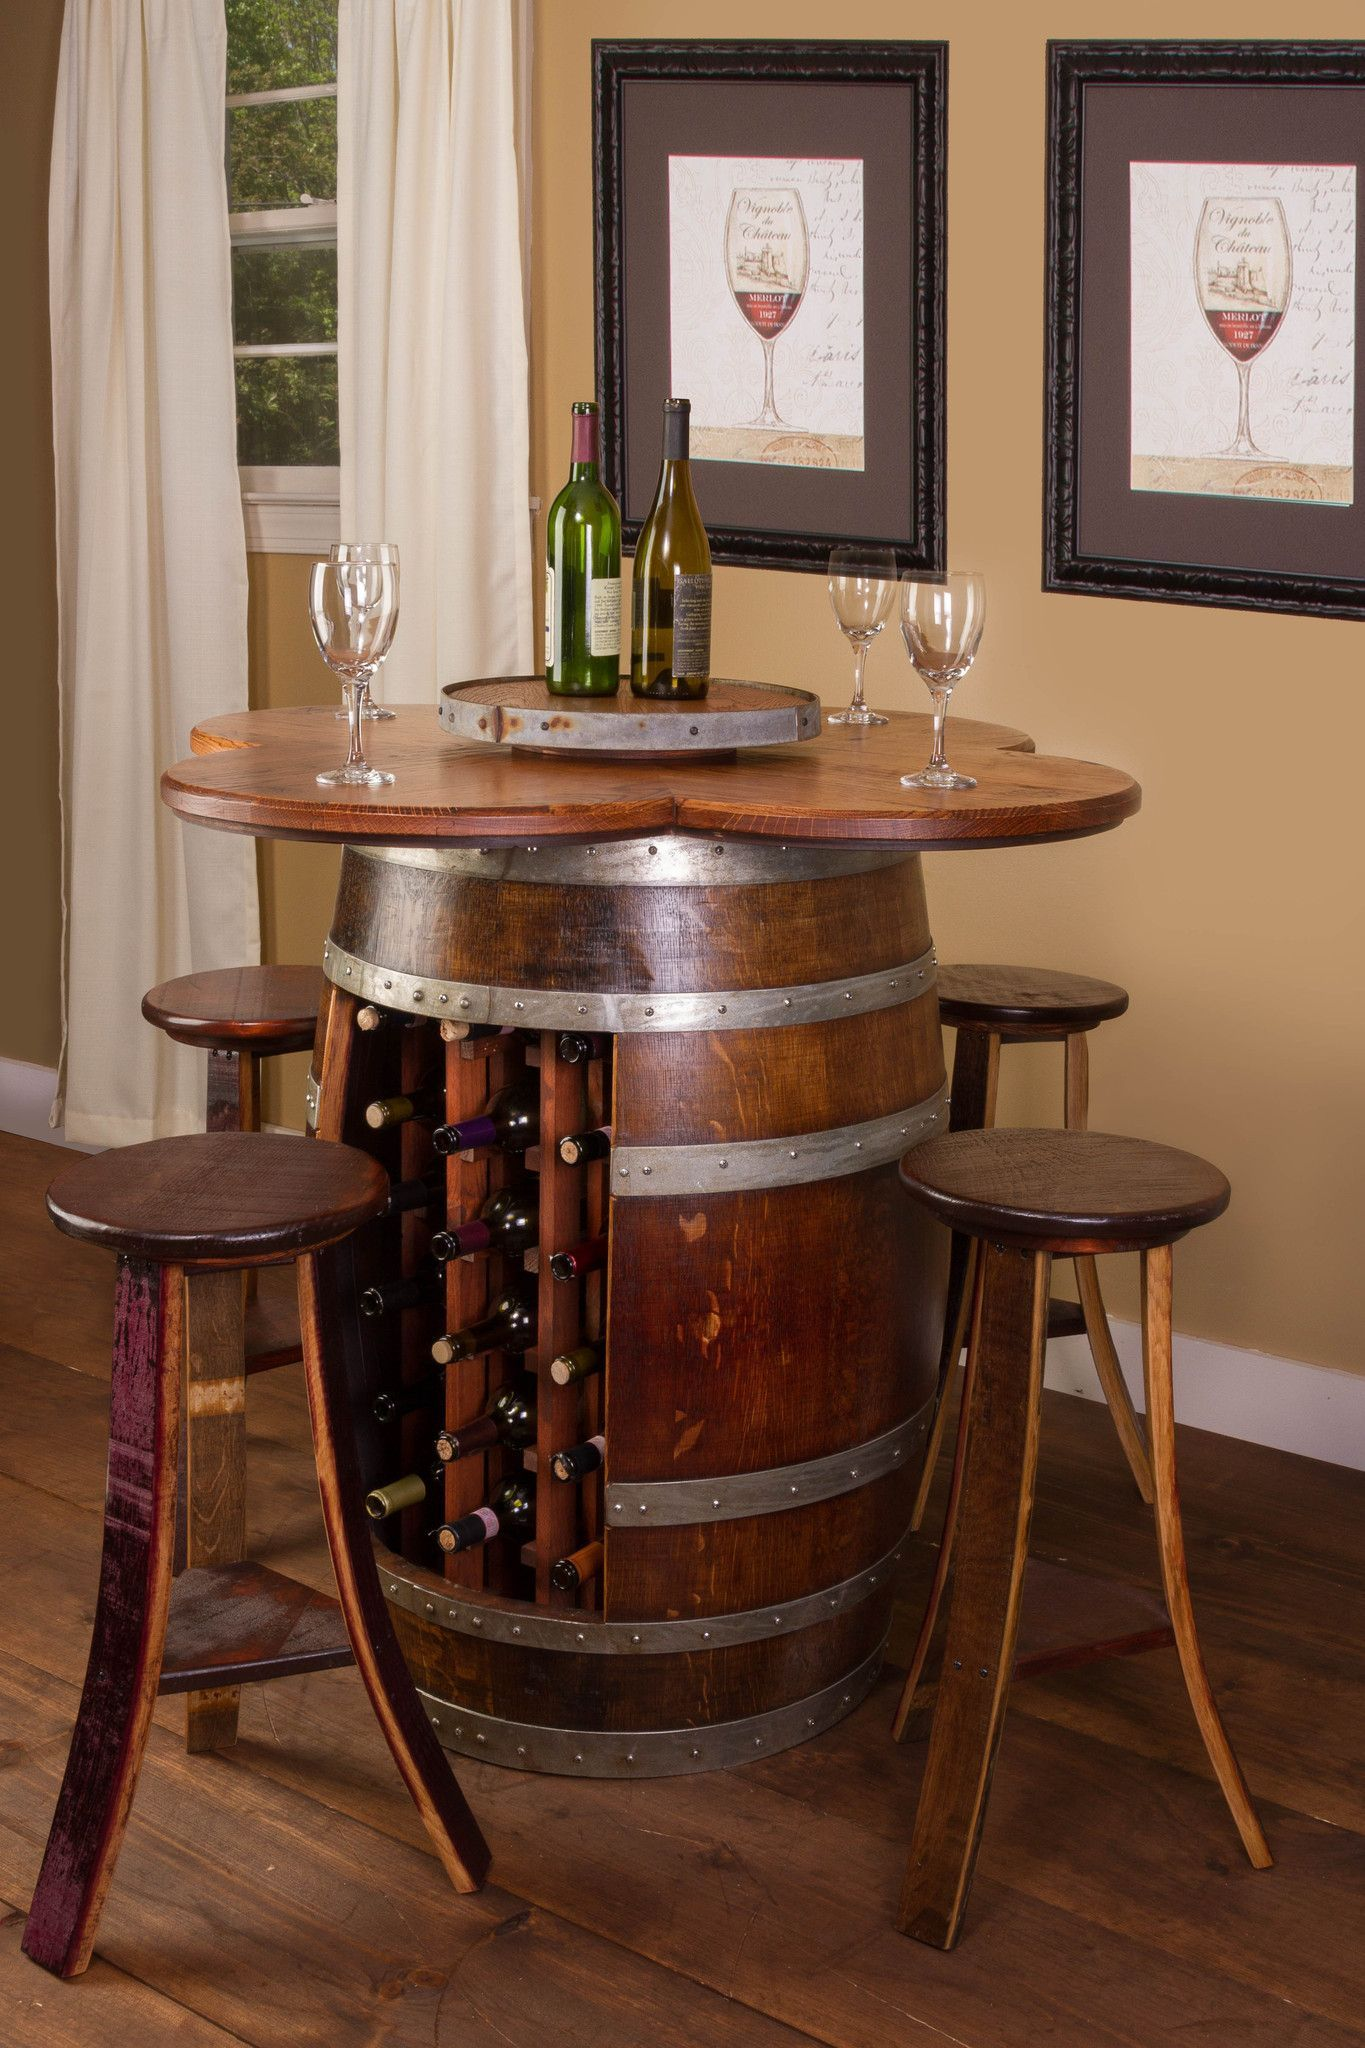 Wine Barrel Table Set Wine Rack Base With 4 Stools Donachelli S Cellars Wine Barrel Table Barrel Table Wine Barrel Furniture